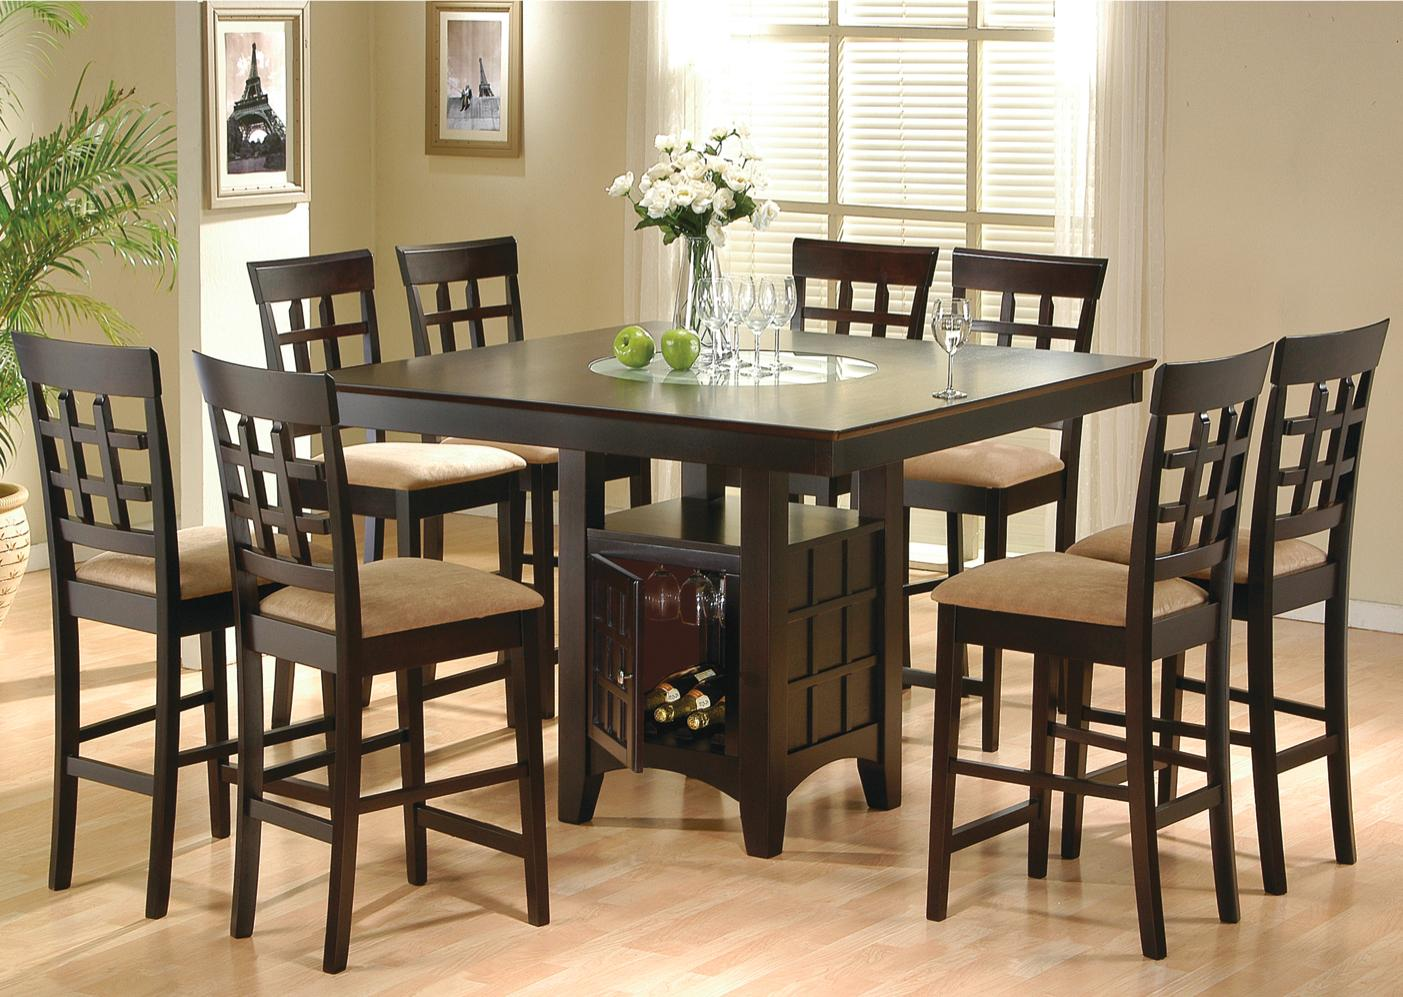 dining room sets 6 chairs folding chair guitar chords coaster mix match 9 piece counter height set dunk